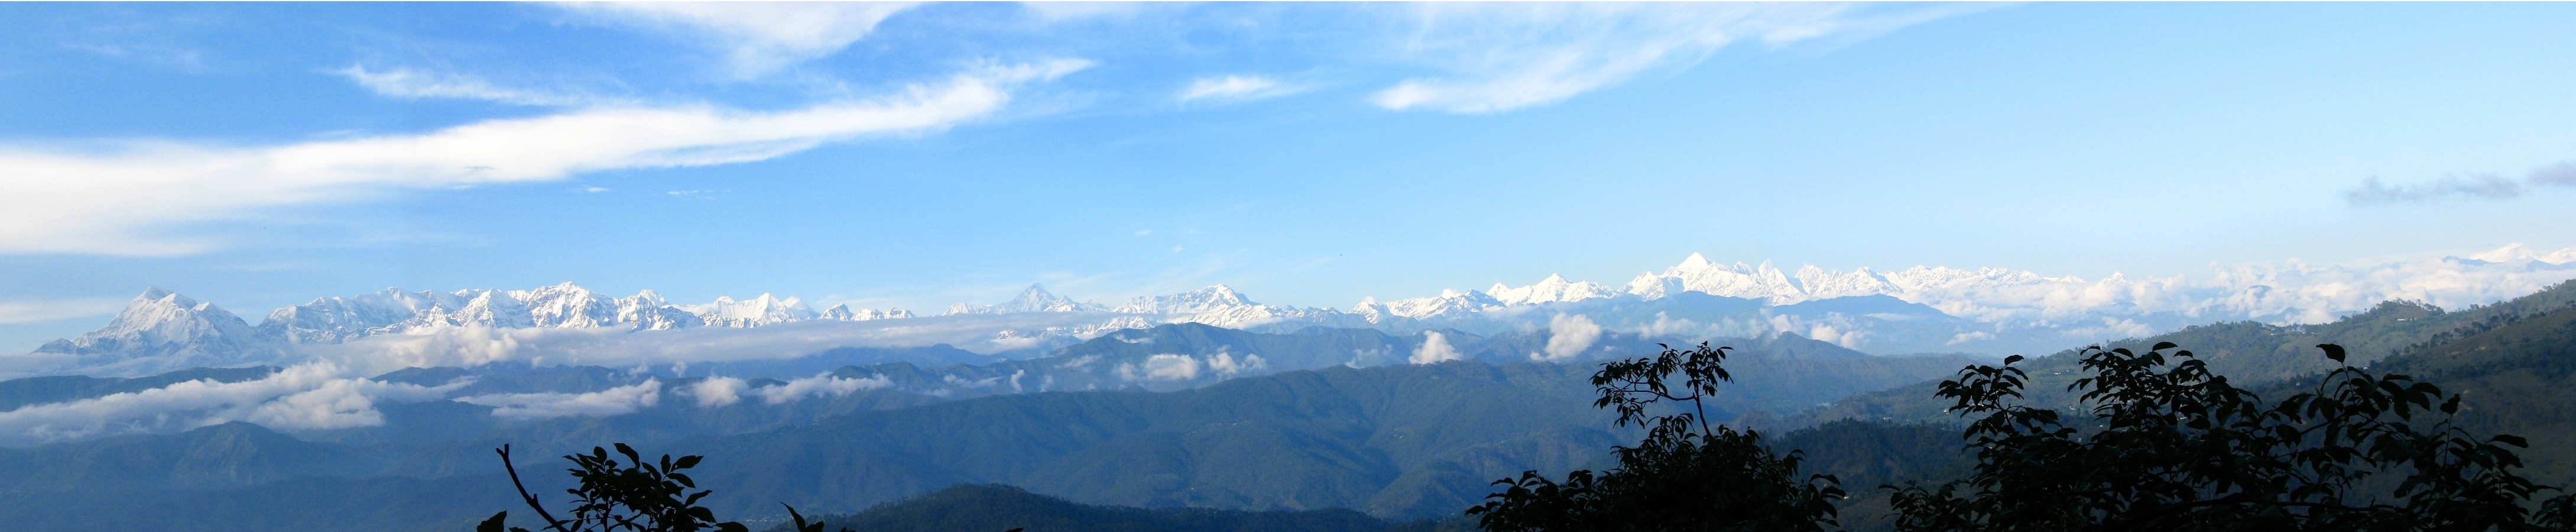 Kausani India  city photo : ... of the Himalayas from Kausani, Uttarakhand Wikimedia Commons